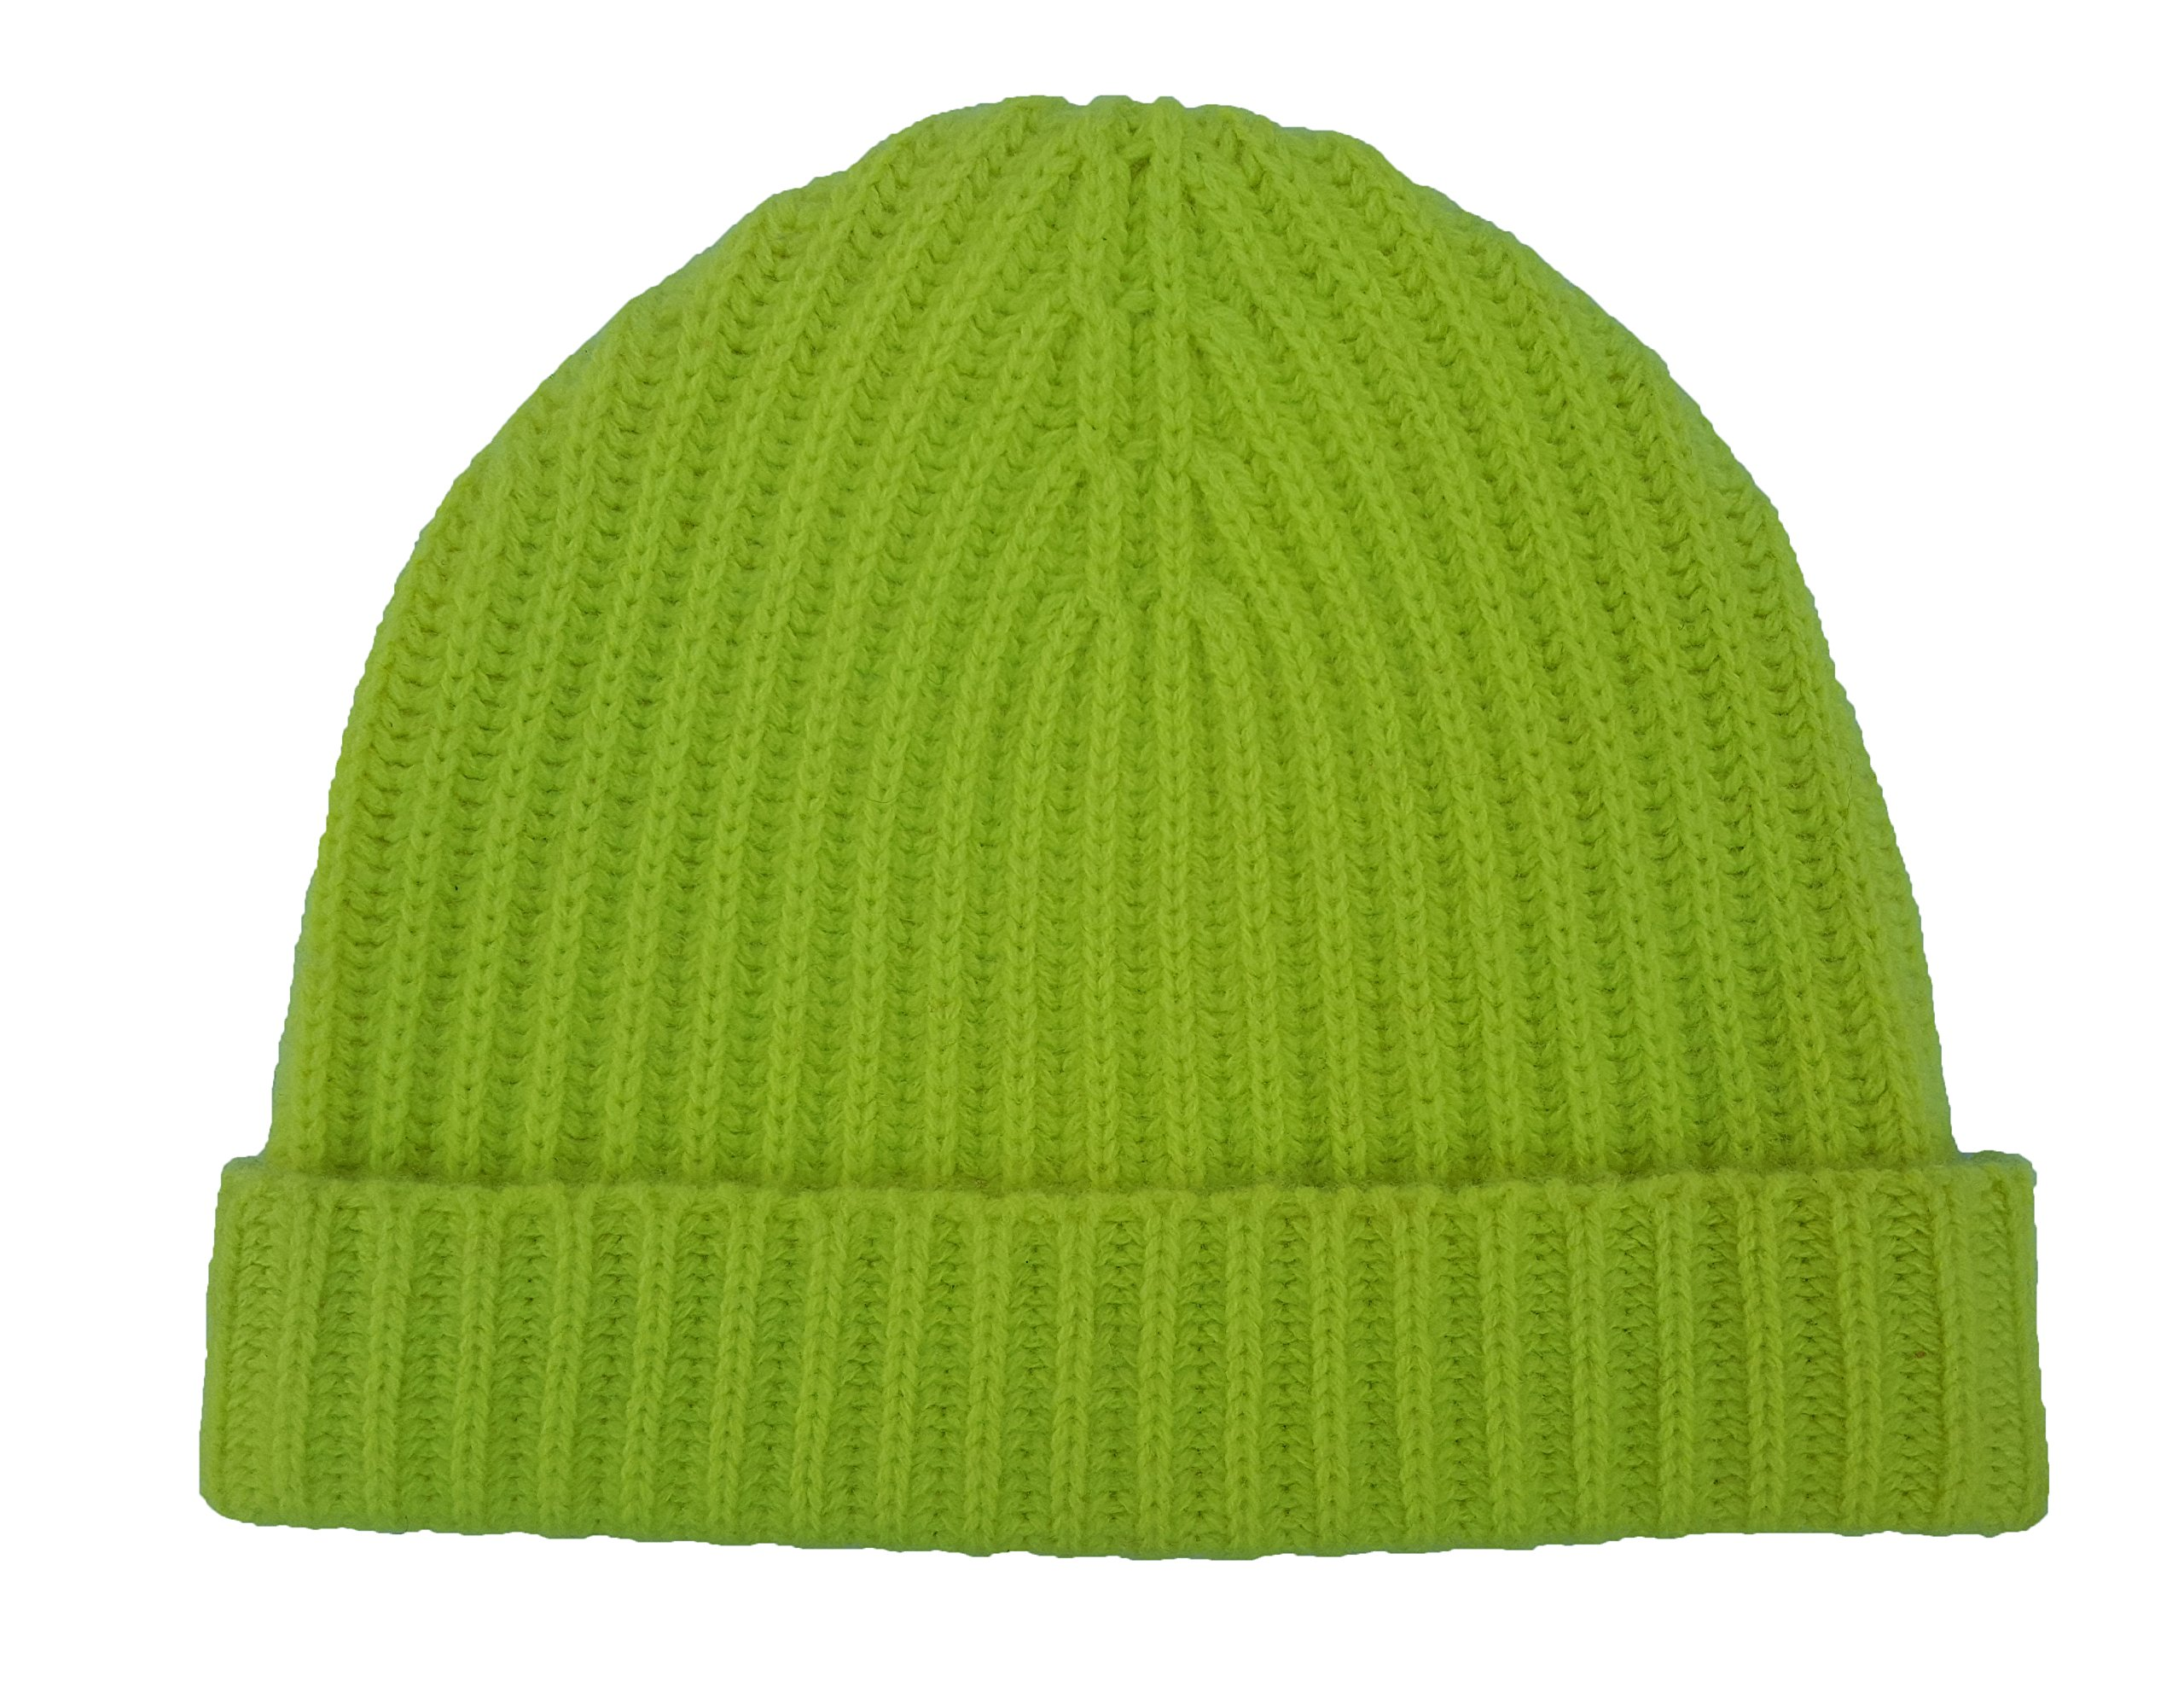 Polo Ralph Lauren Ribbed Cashmere Hat One Size (One Size Fits All, Yellow)